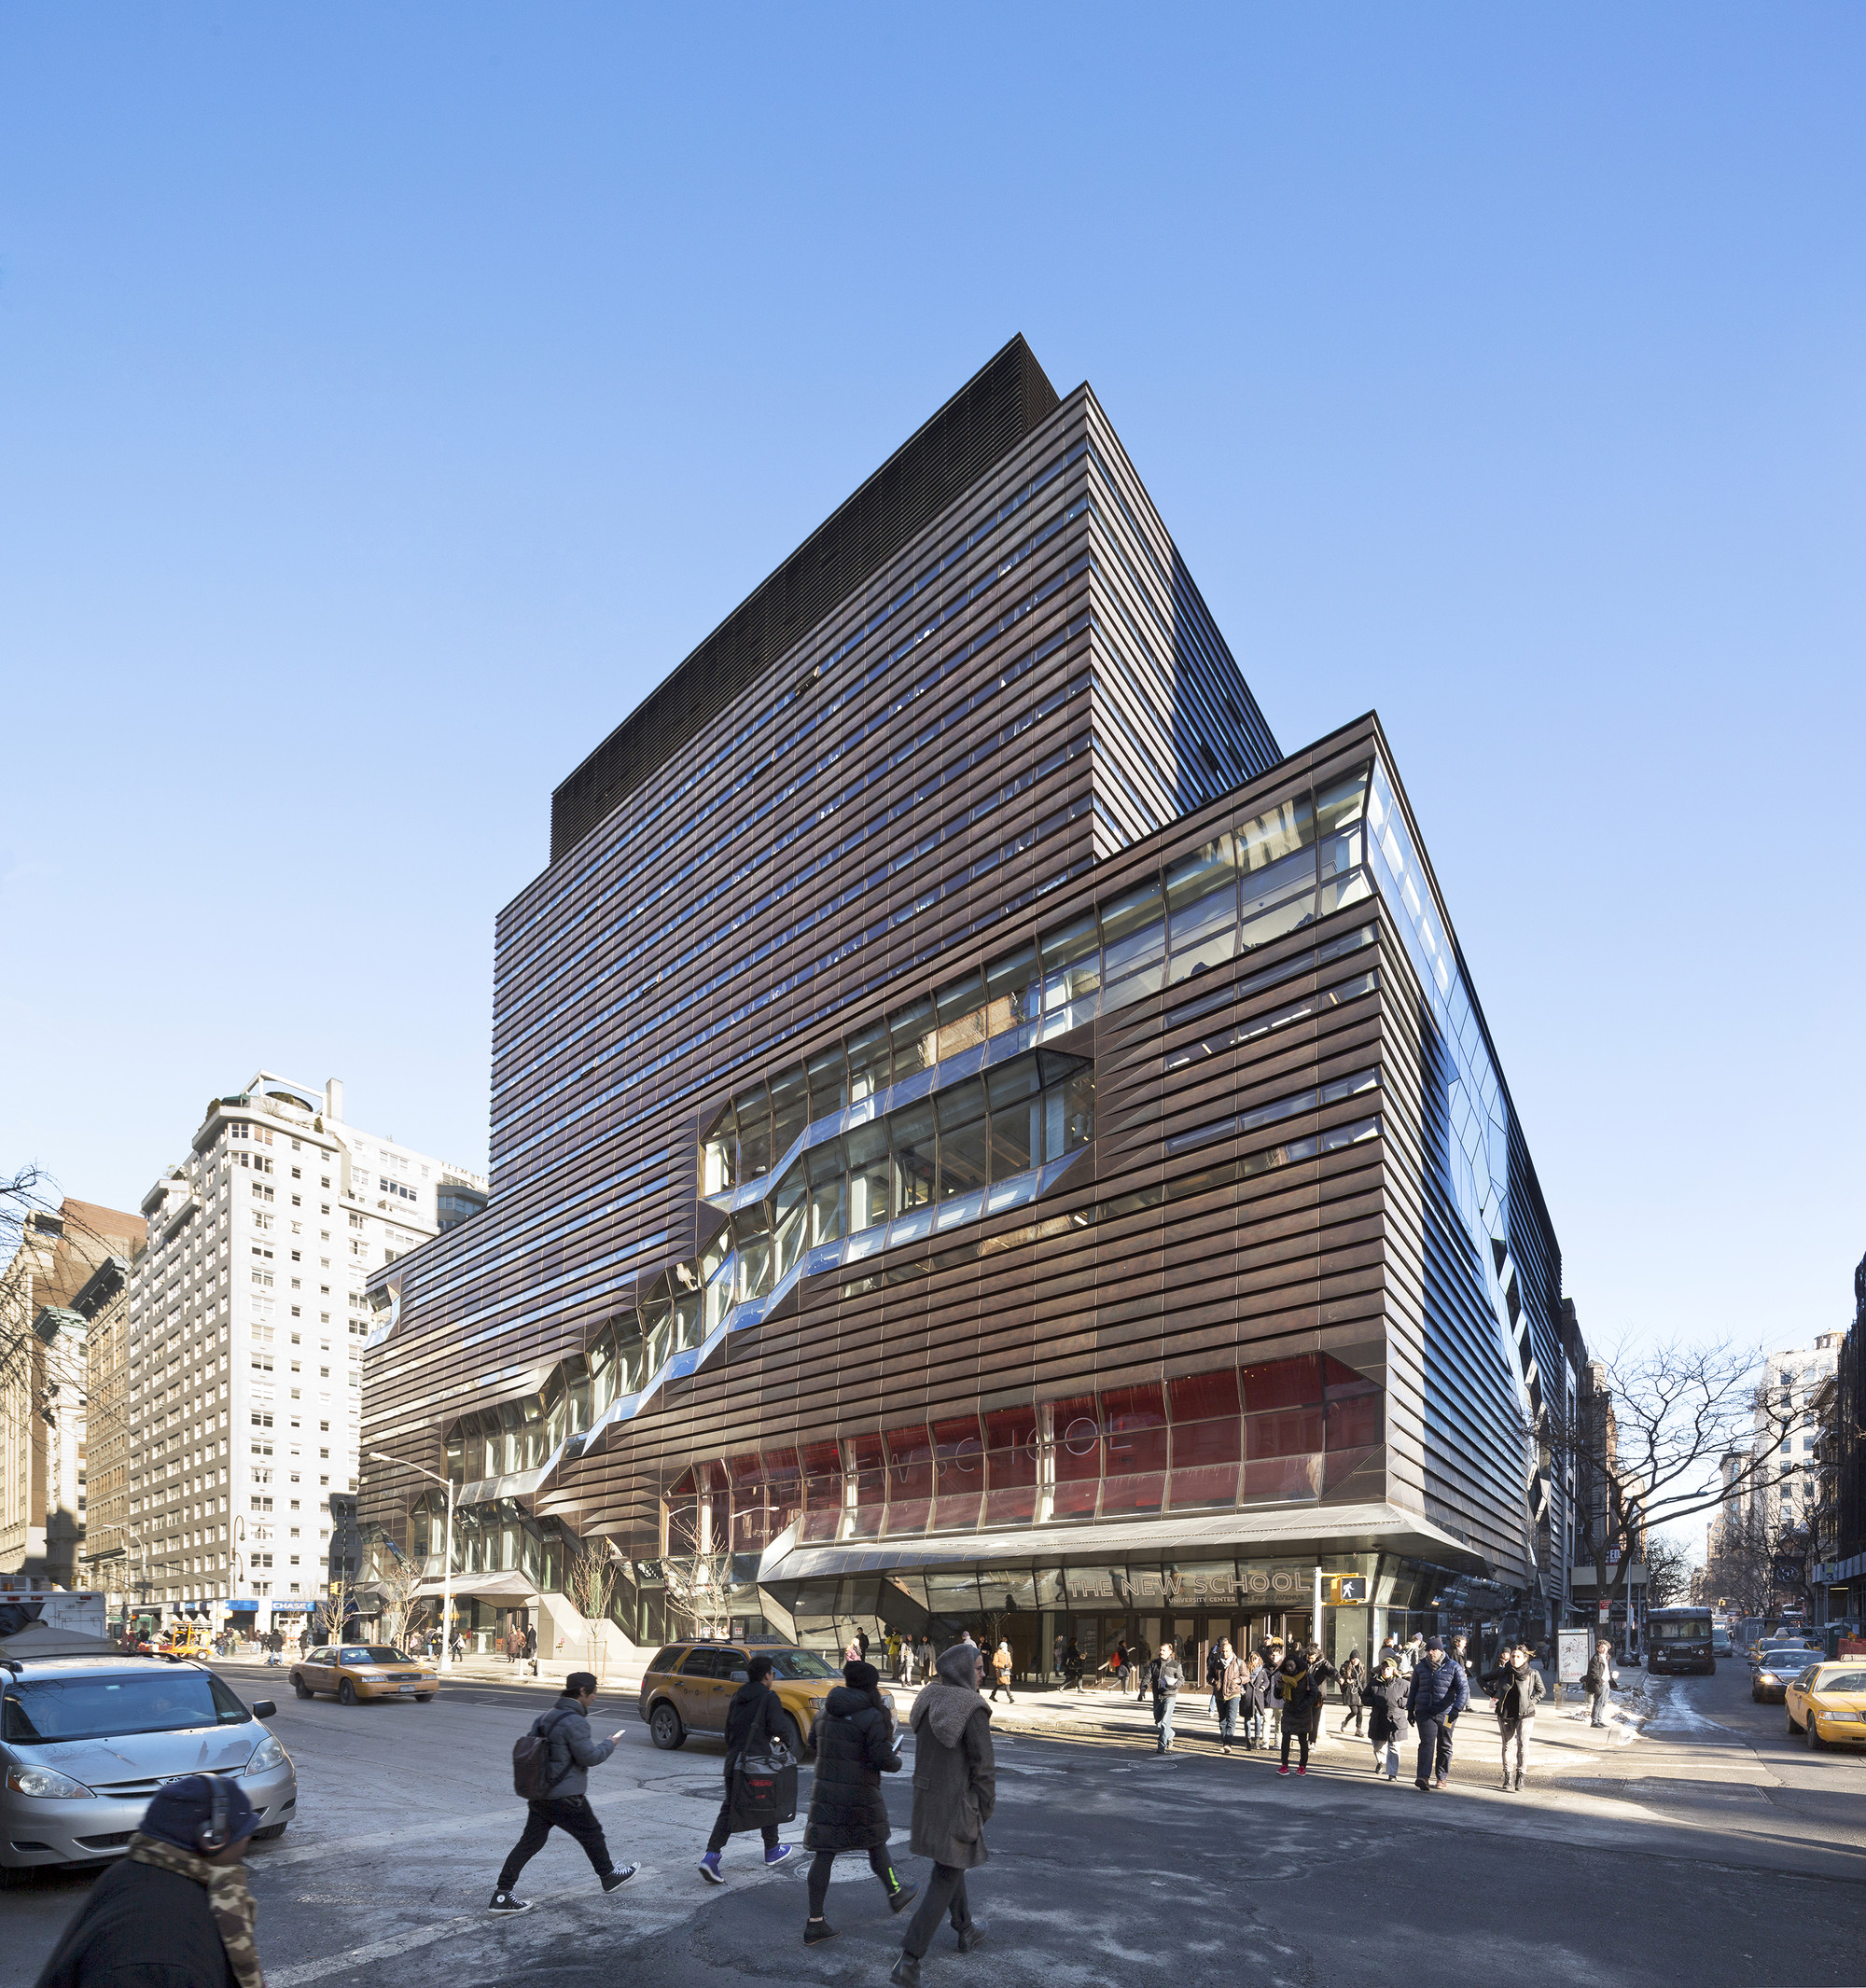 High Quality The New School University Center,© James Ewing Great Pictures